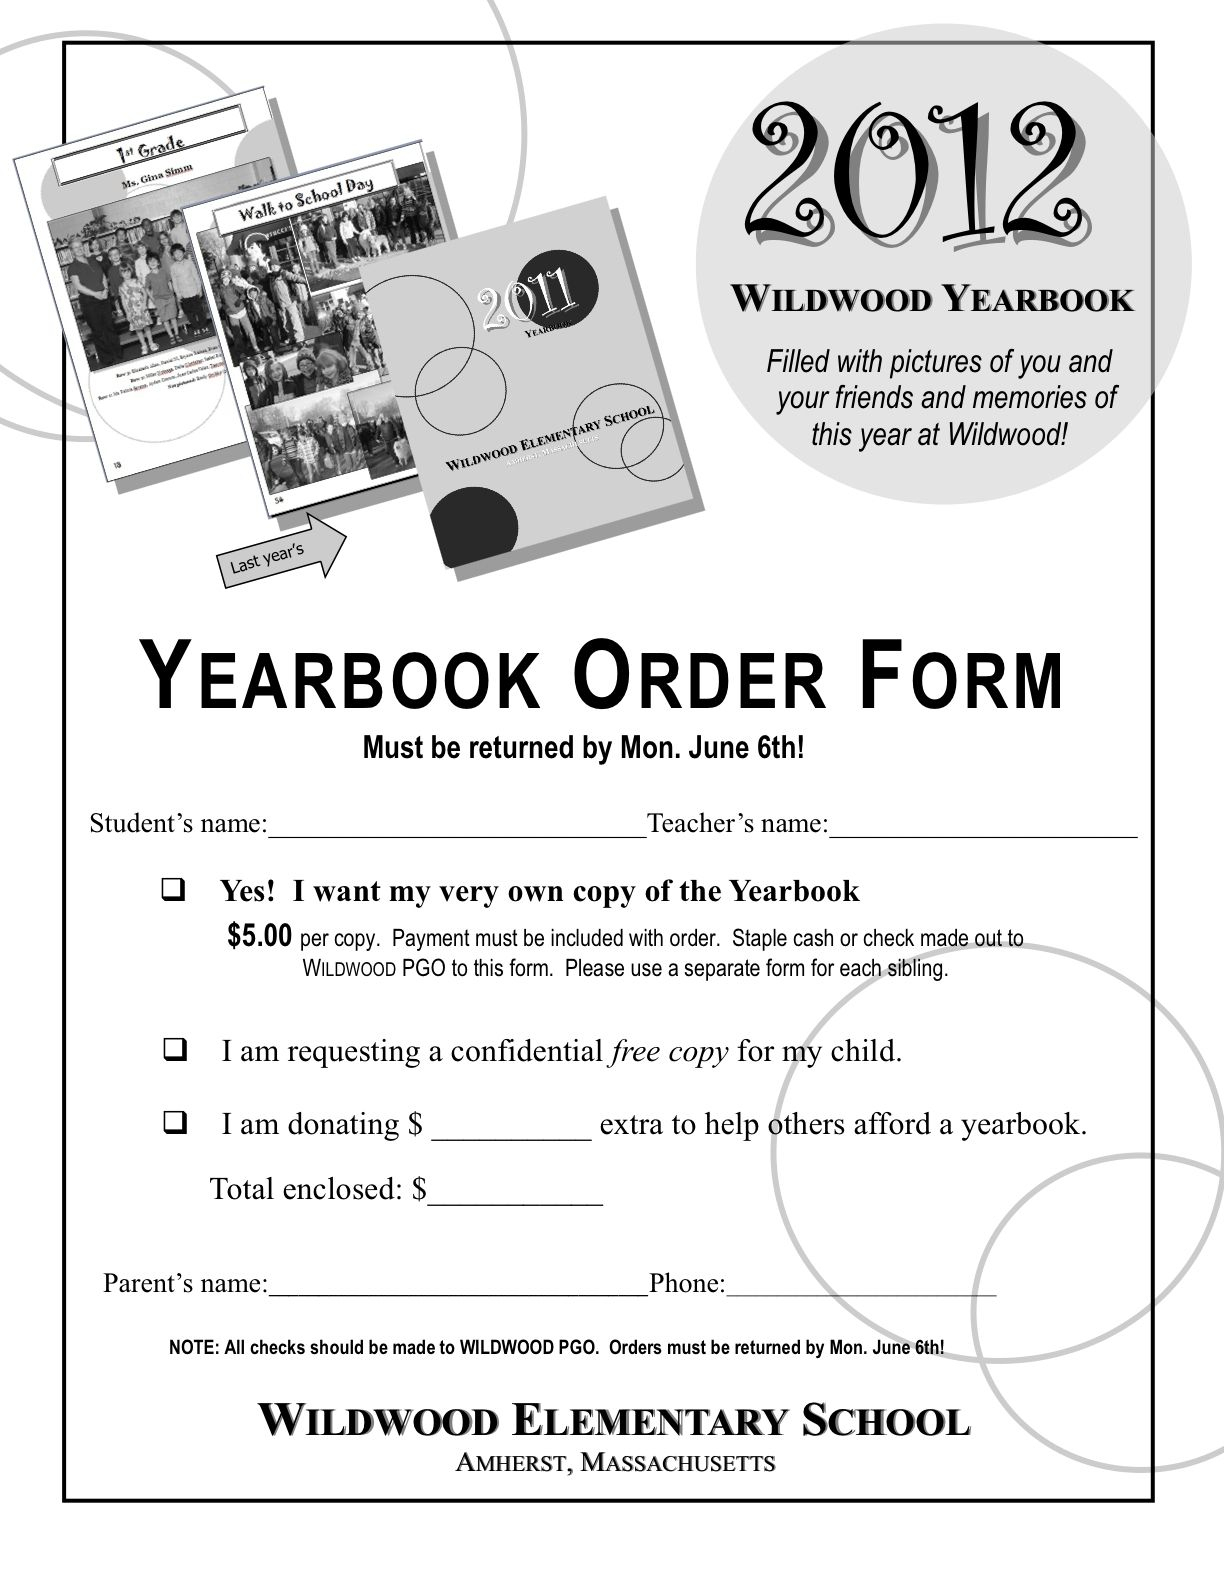 Yearbook Order Form Template - Google Search | Yearbook Design Ideas - Free Printable Yearbook Templates